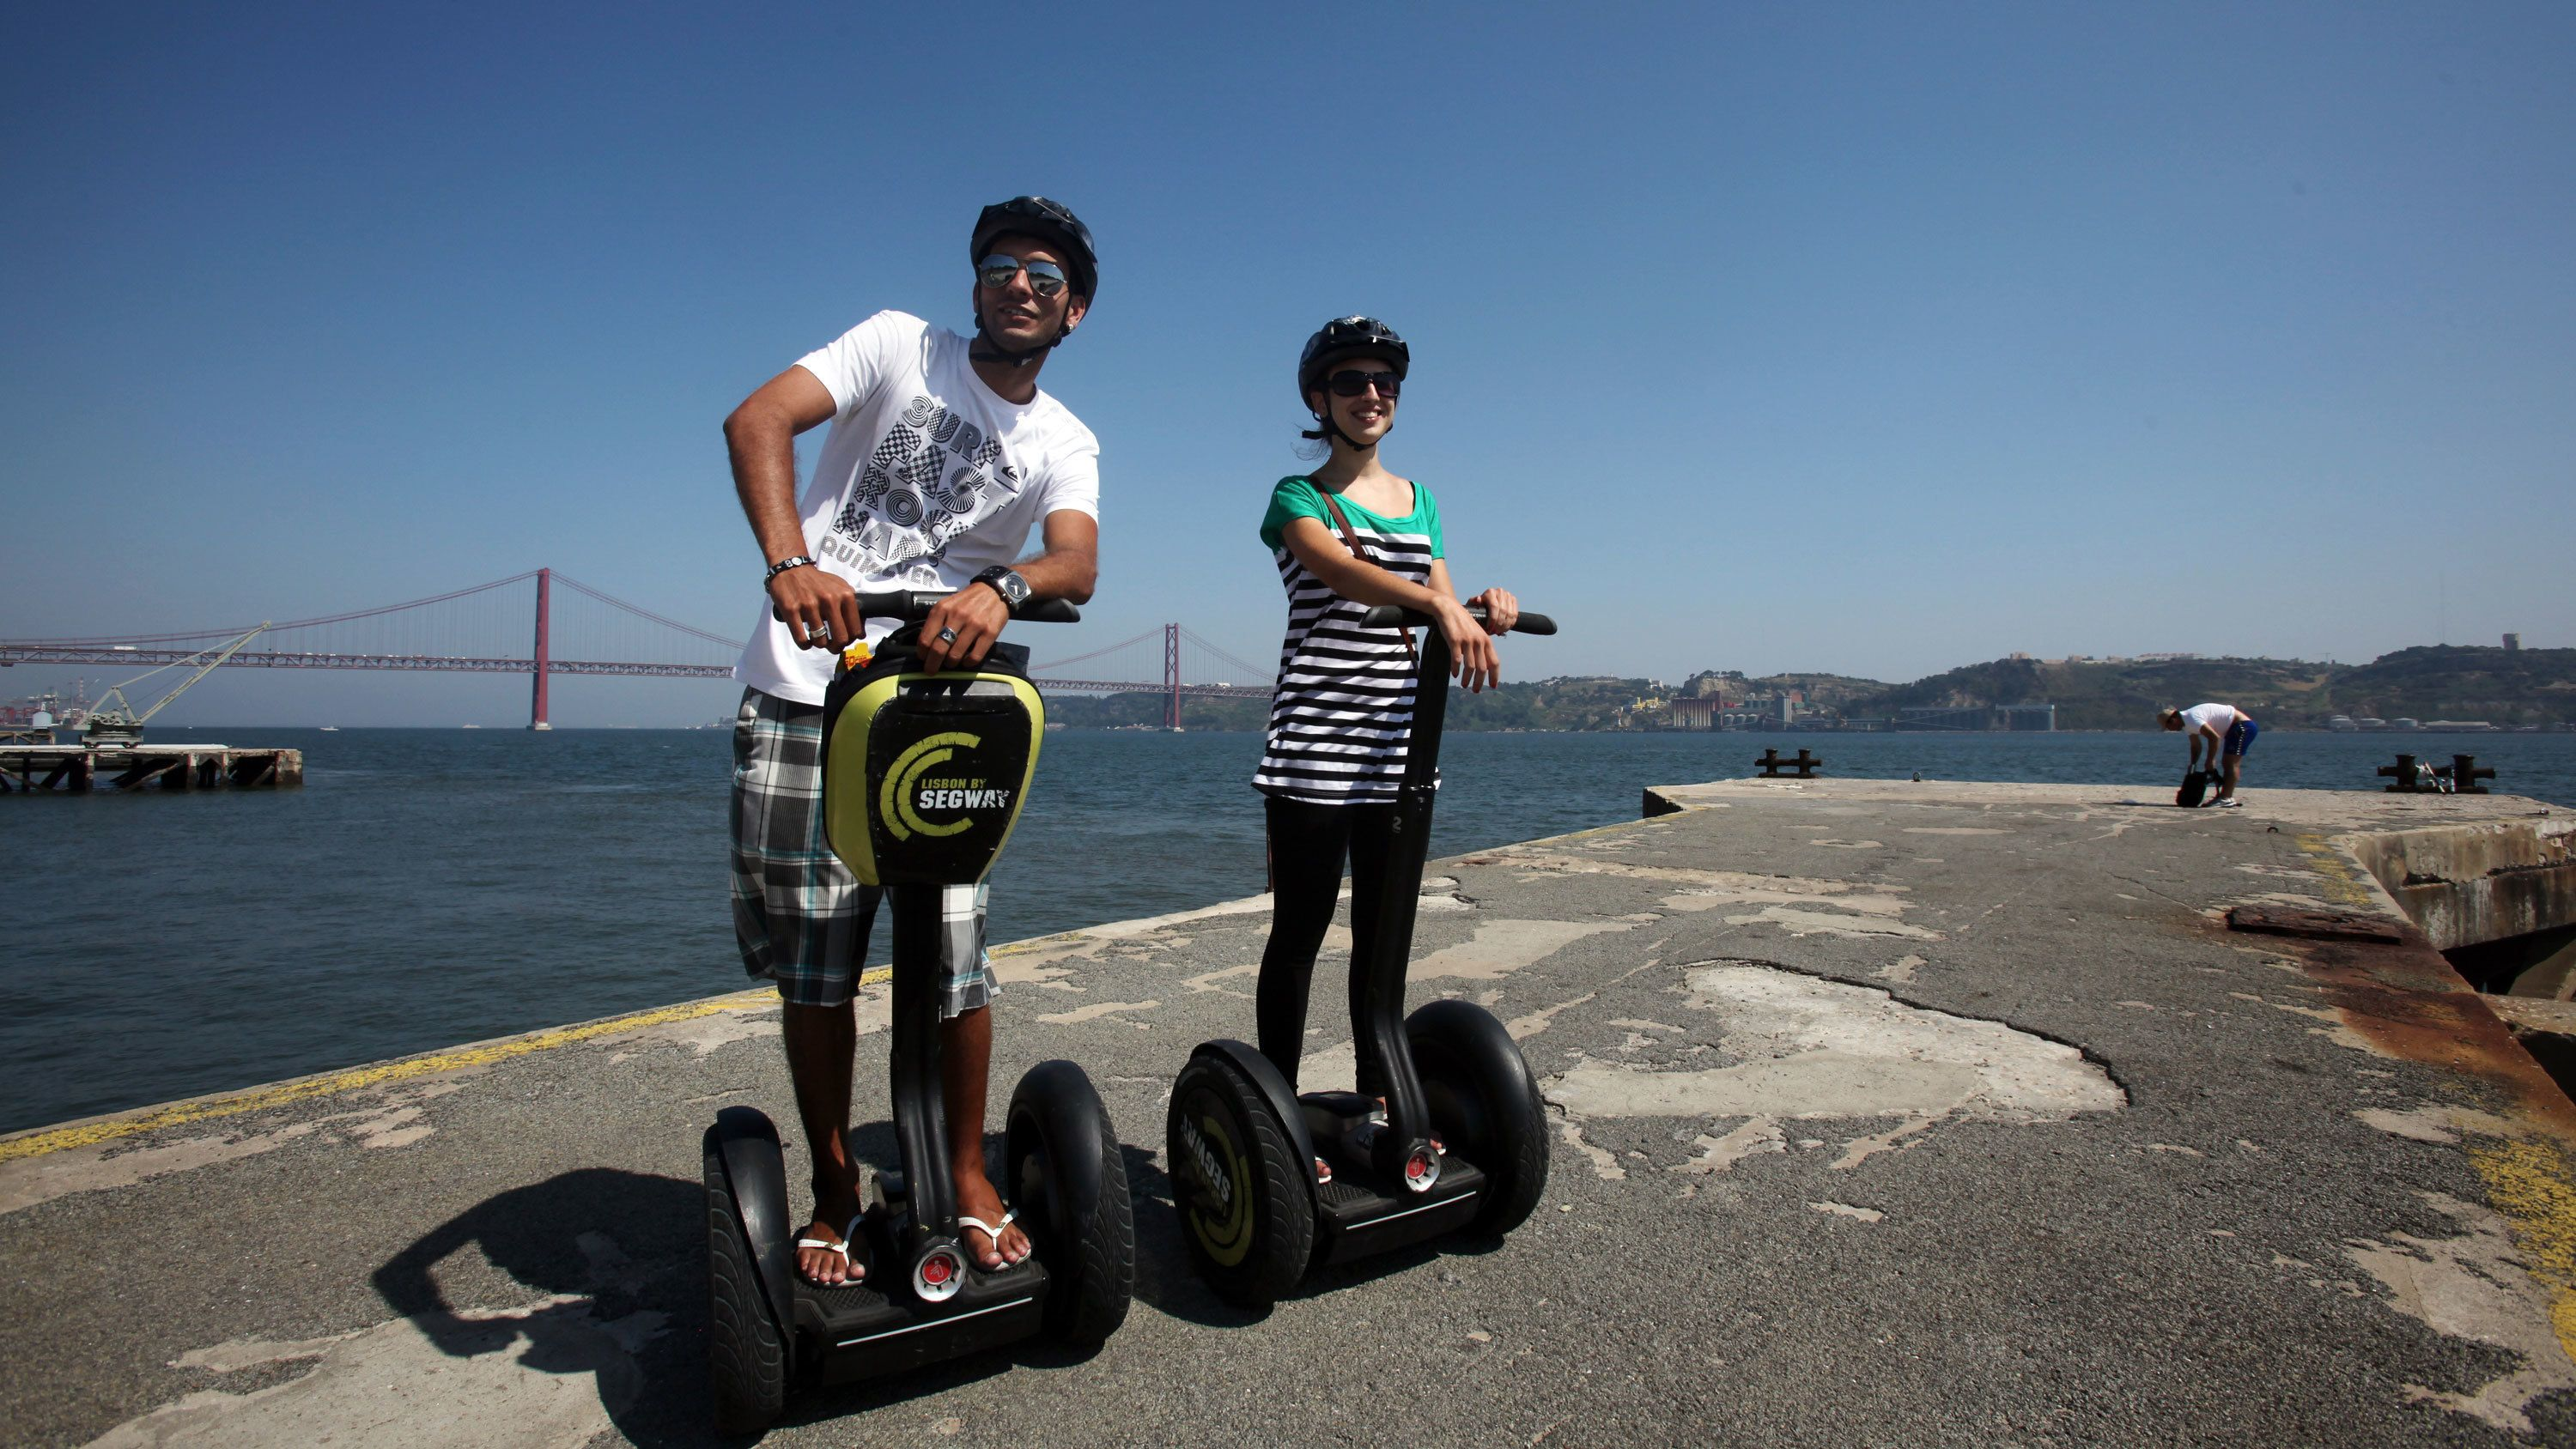 Segway couple on a pier with bridge in the background in Lisbon